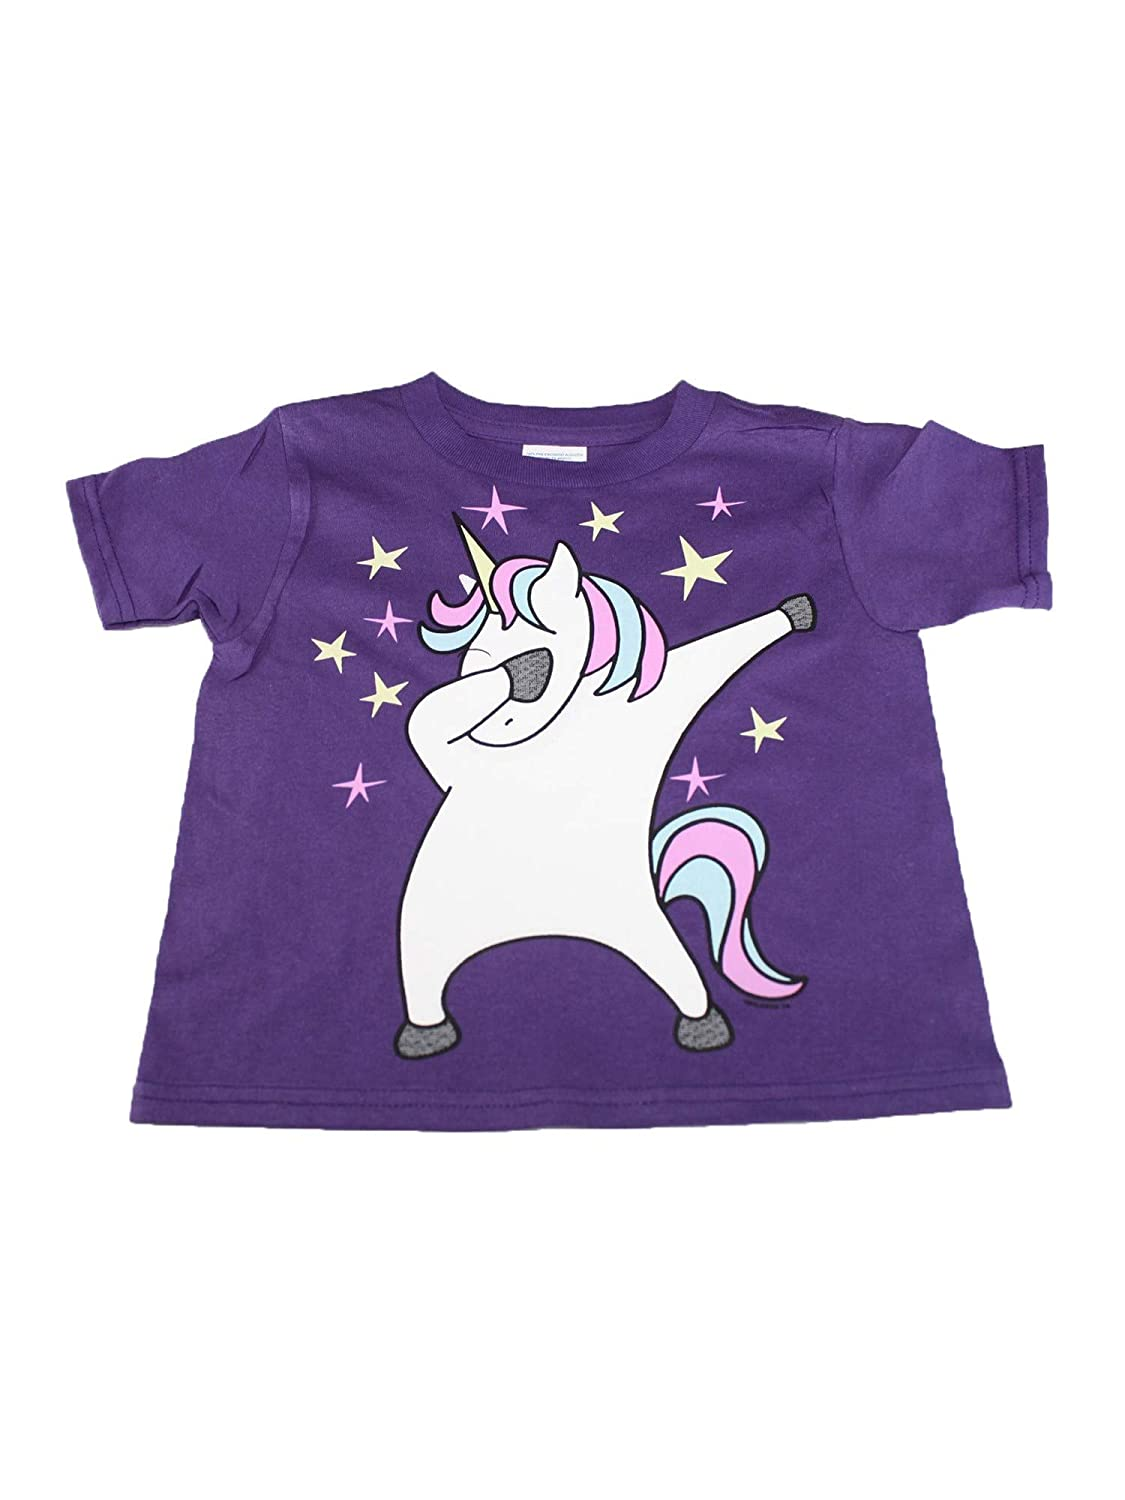 Little Girls Purple Dabbing Unicorn Print Short Sleeve Cotton T-Shirt 2T-5